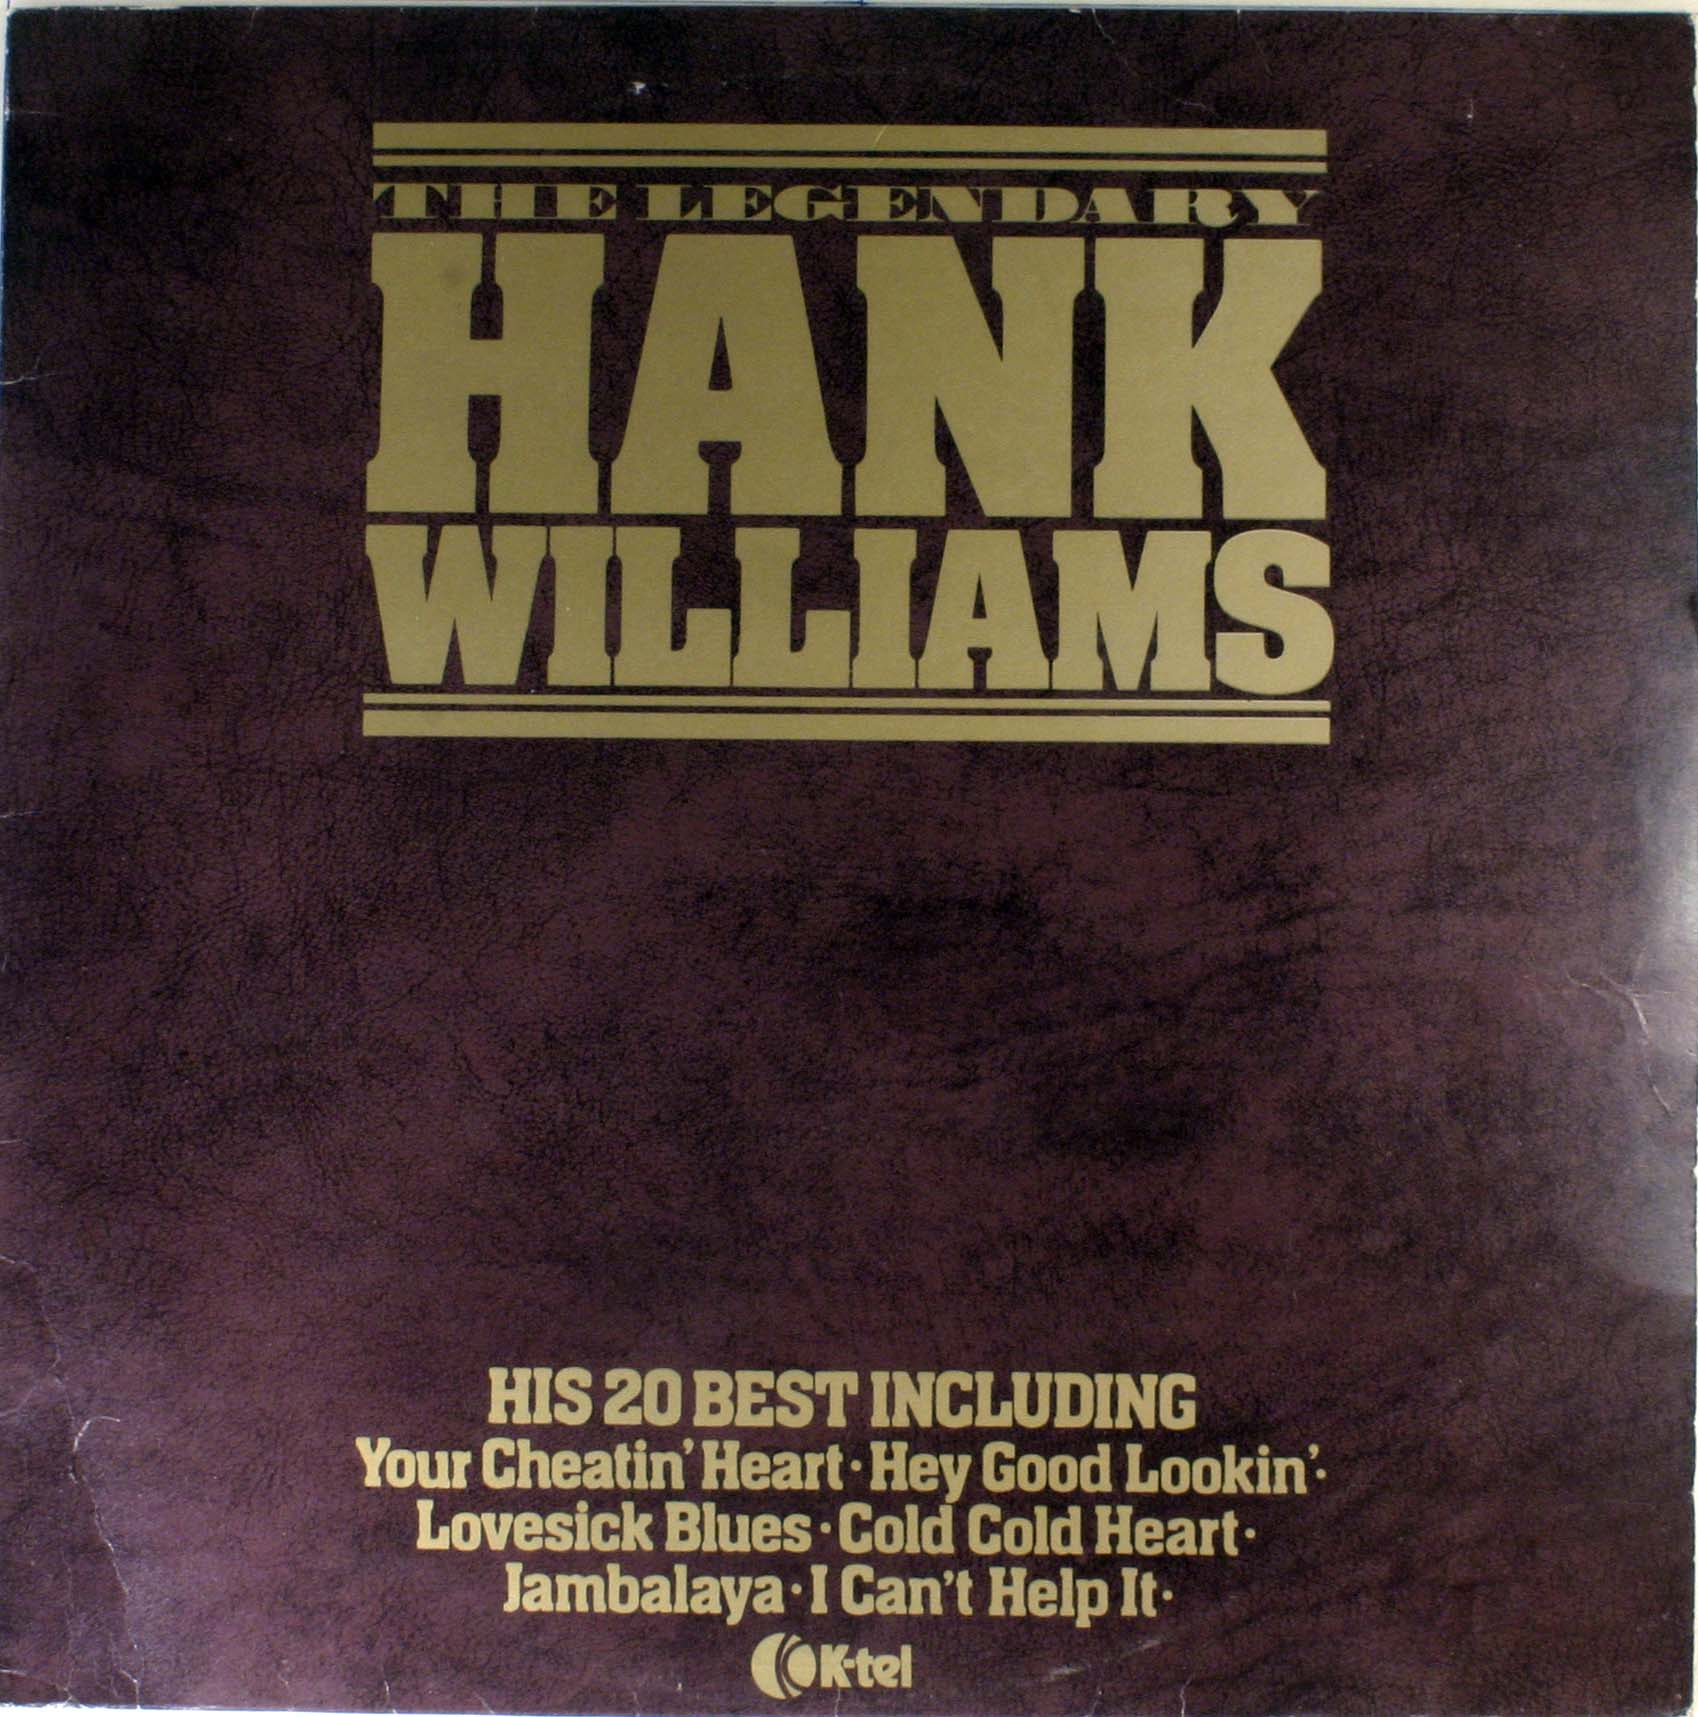 Hank Williams The Legendary Hank Williams LP